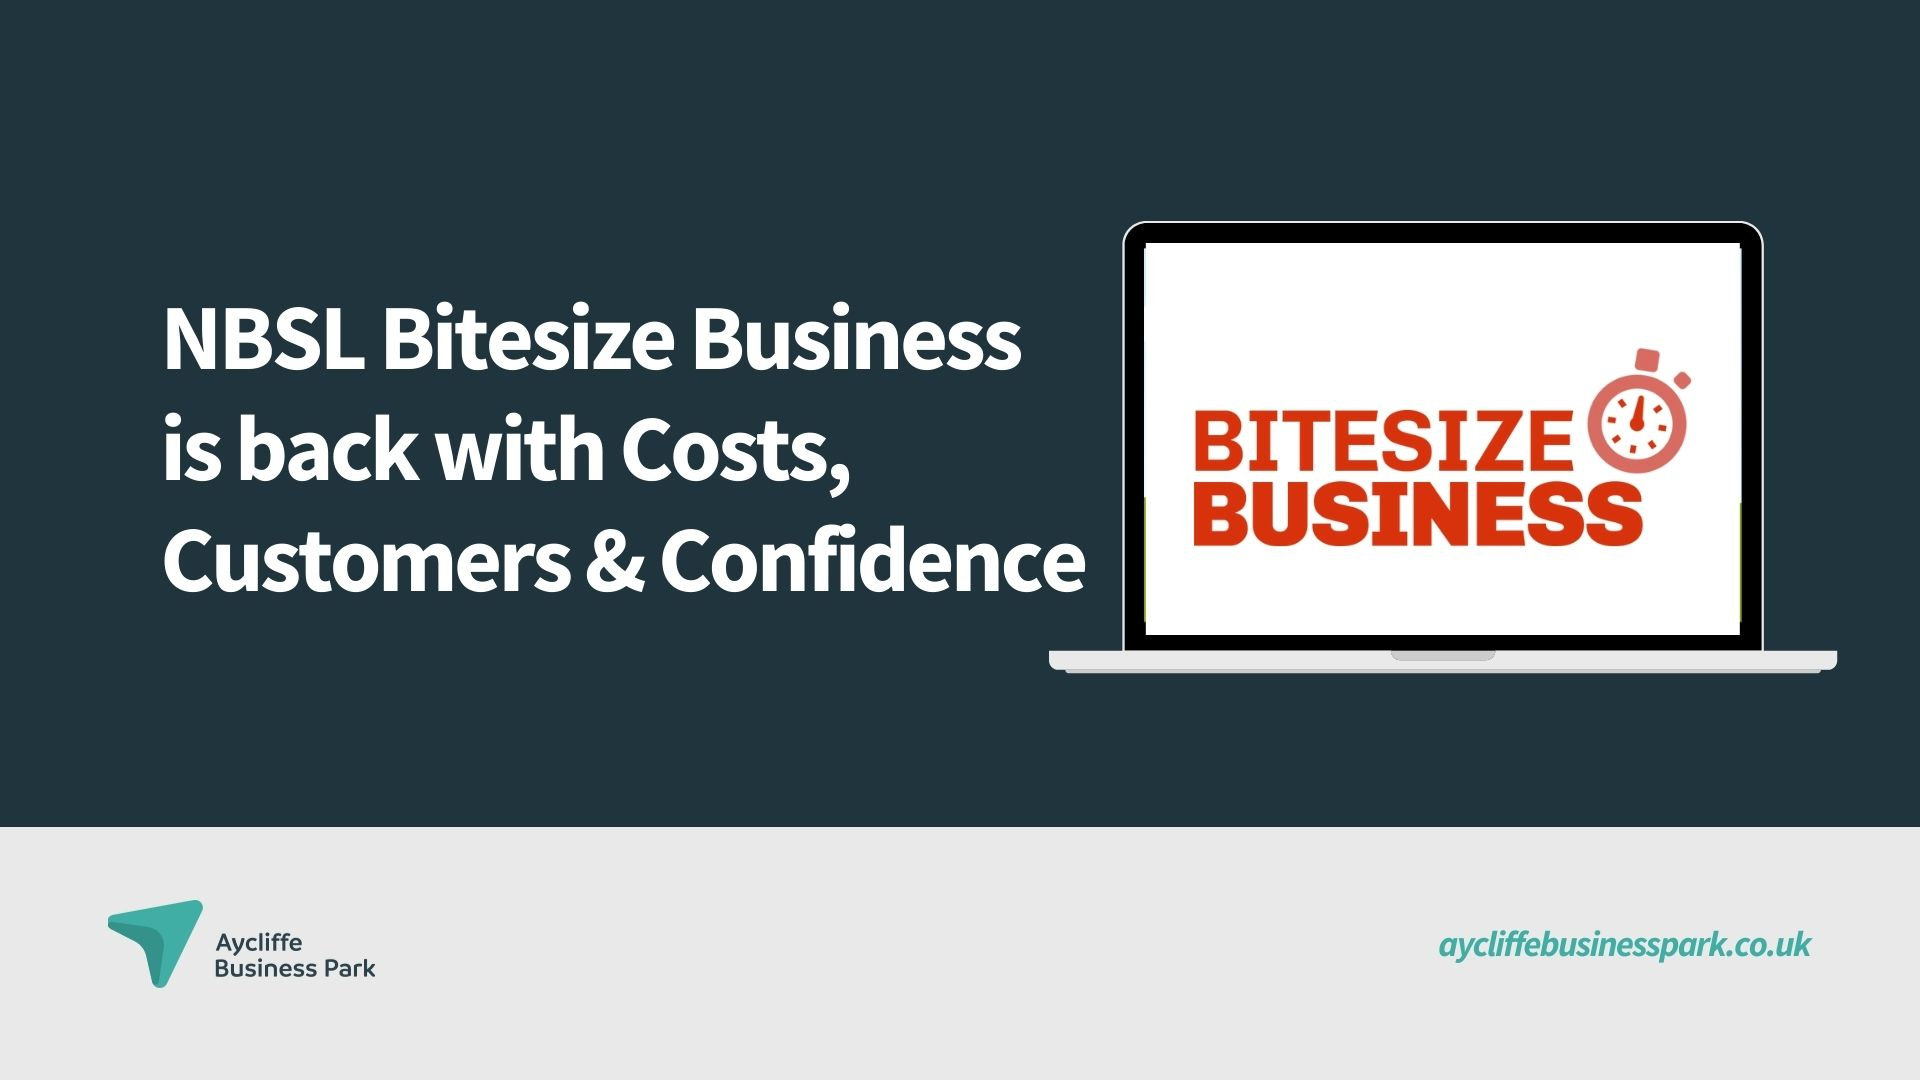 NBSL Bitesize Business is back with Costs, Customers & Confidence